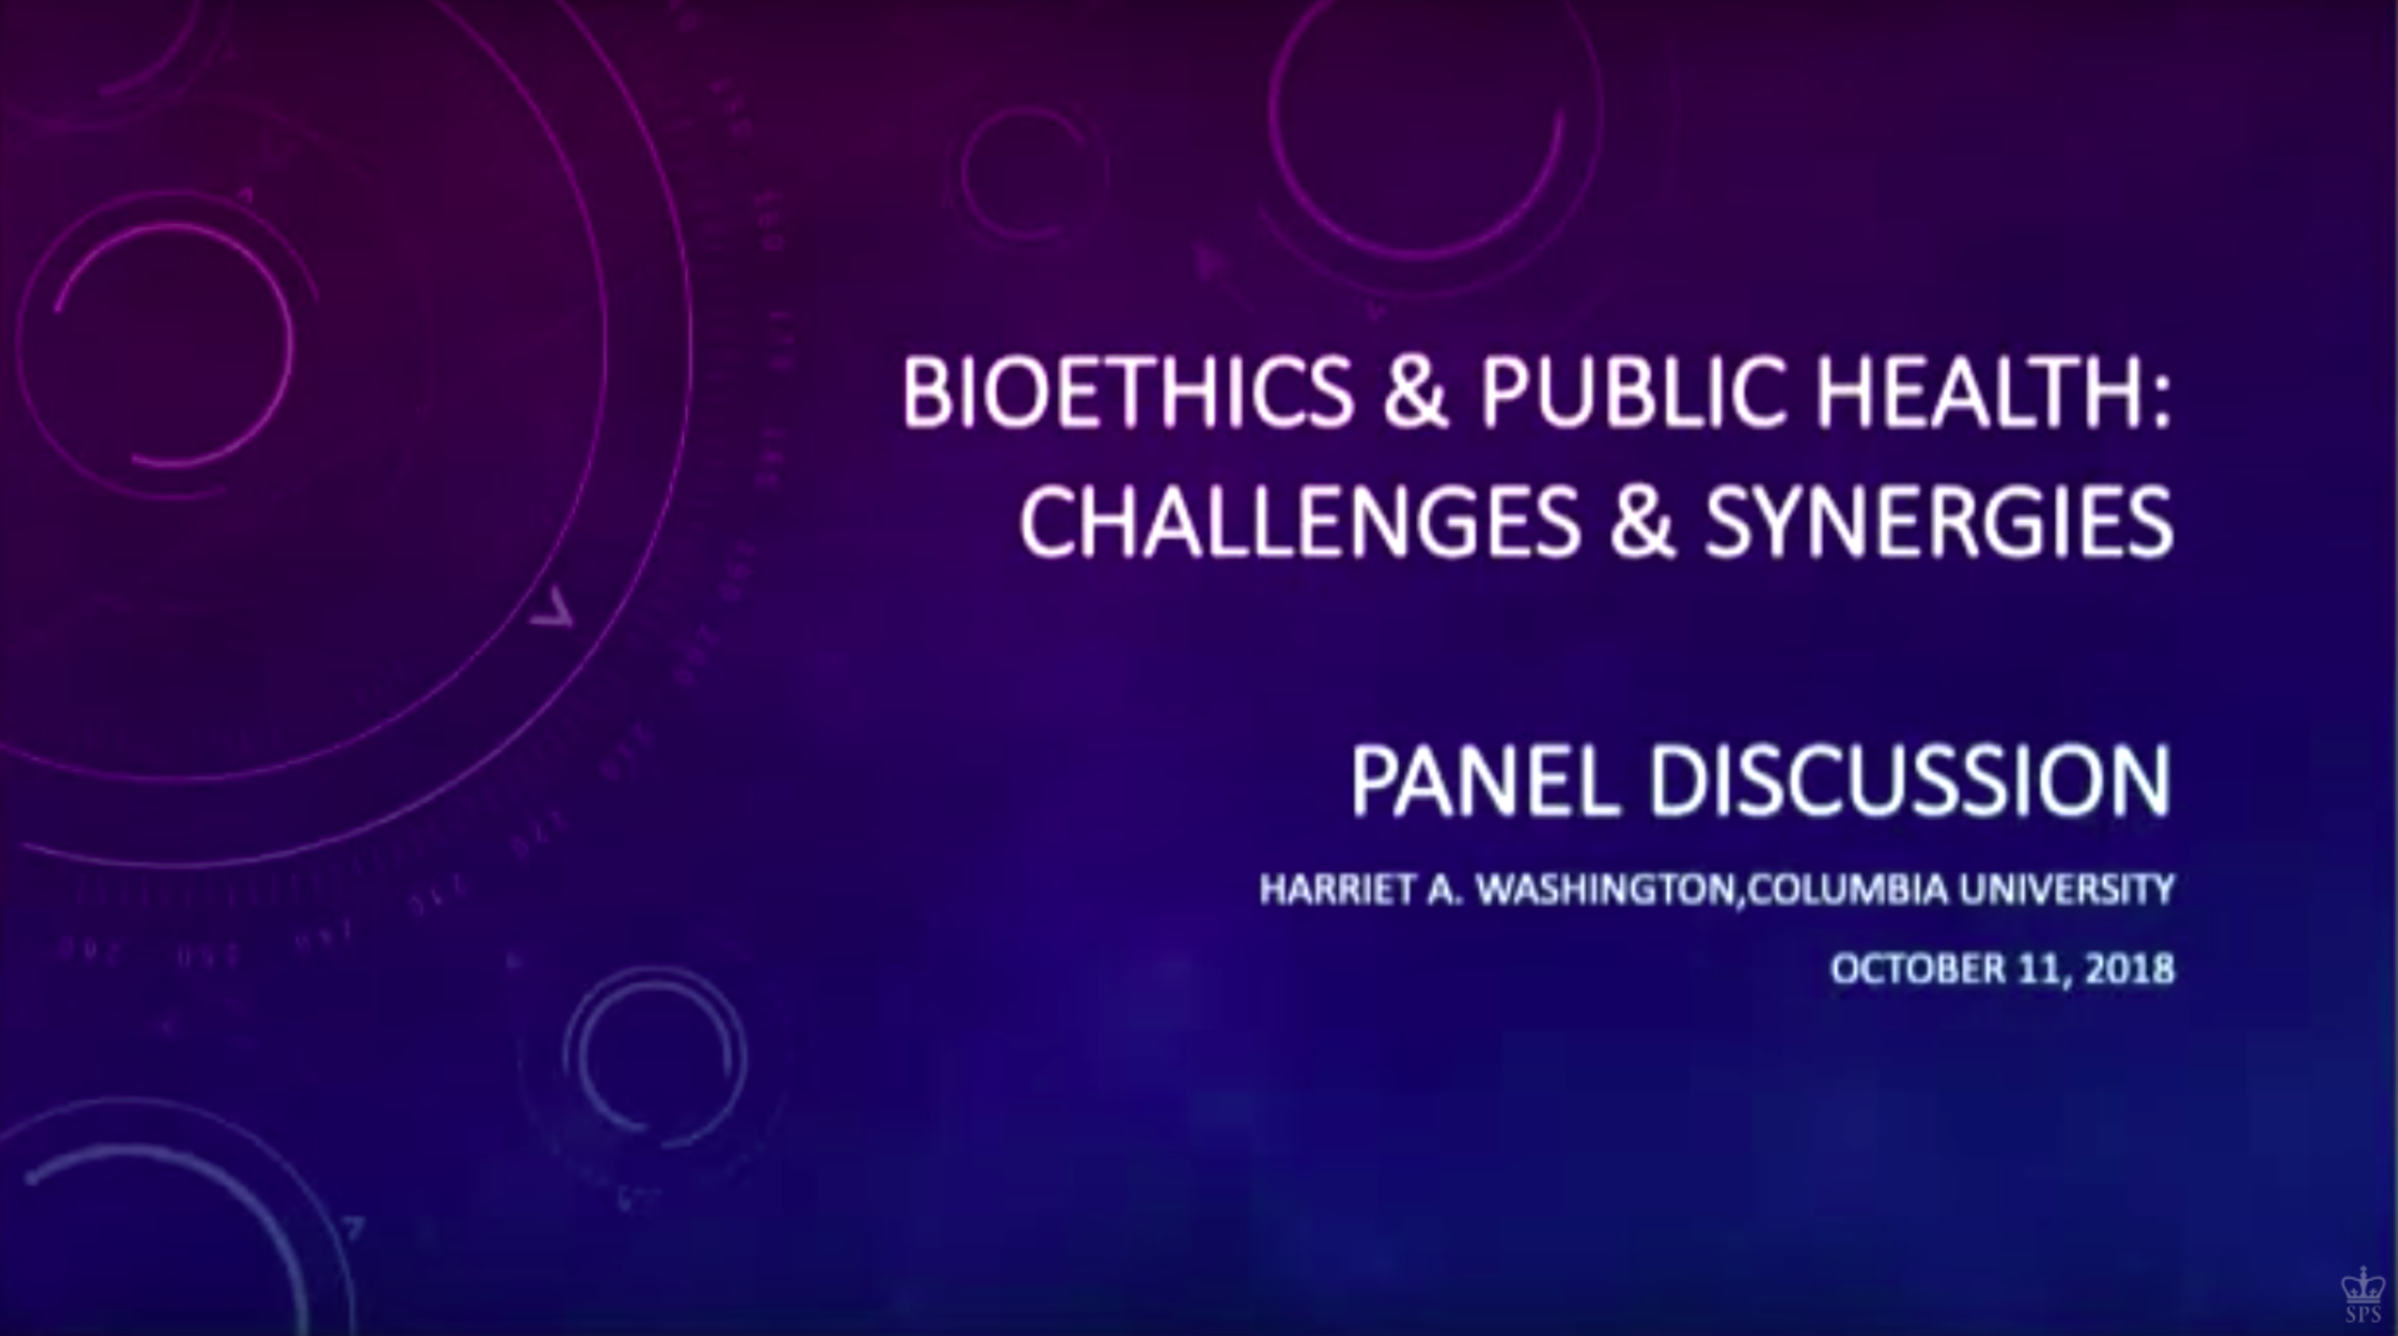 Bioethics and Public Health: Synergies and Challenges